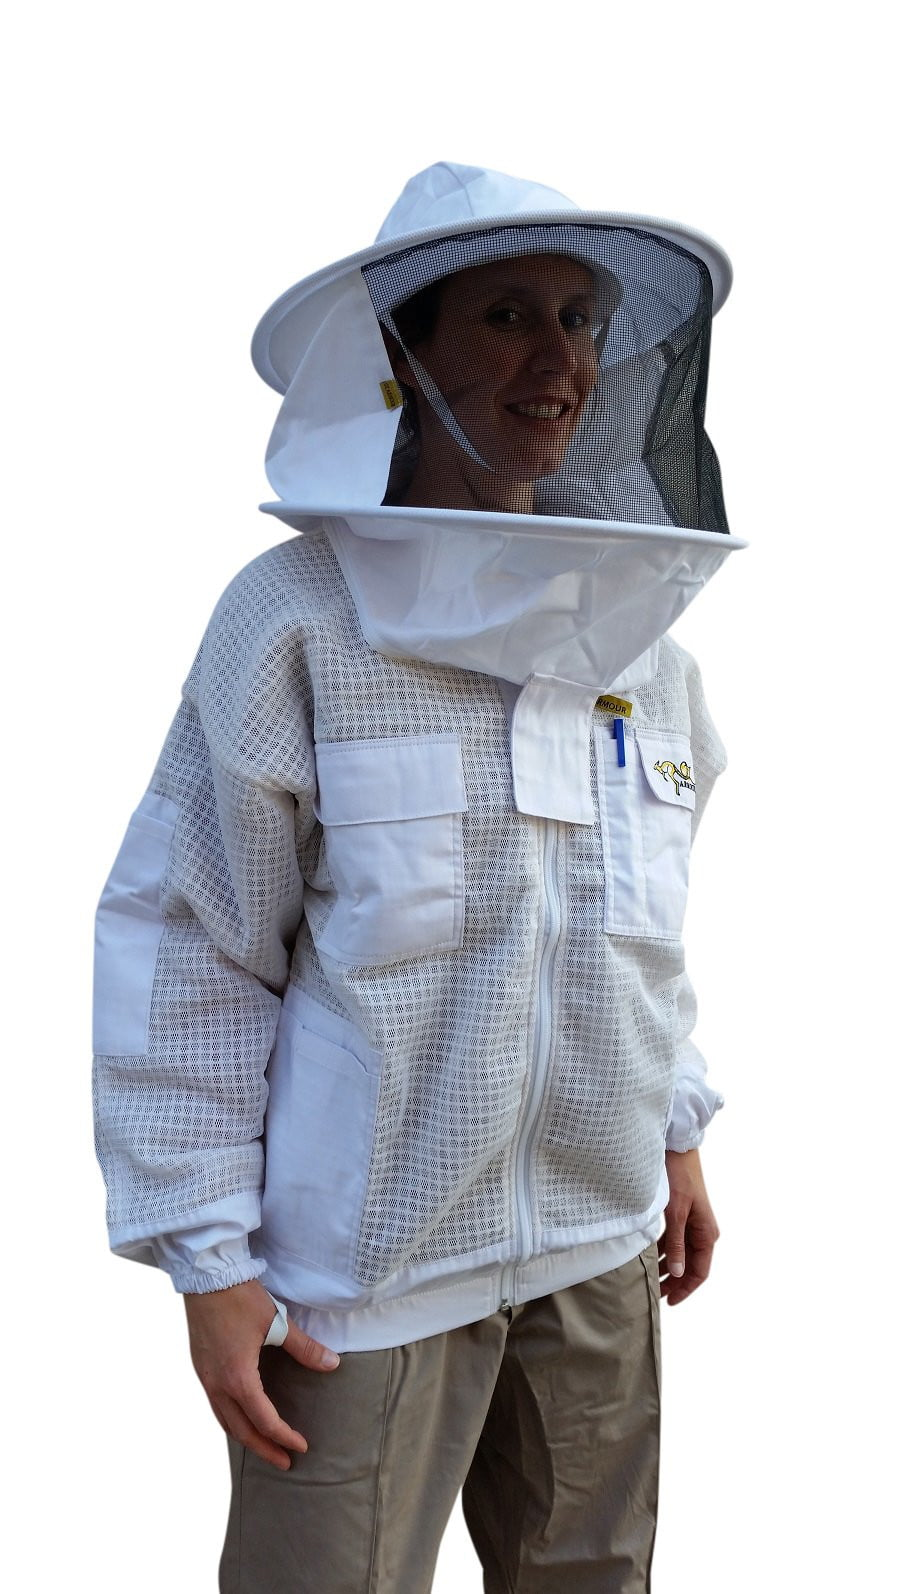 Oz Armour 3 Layer Mesh Ventilated Beekeeping Jacket With